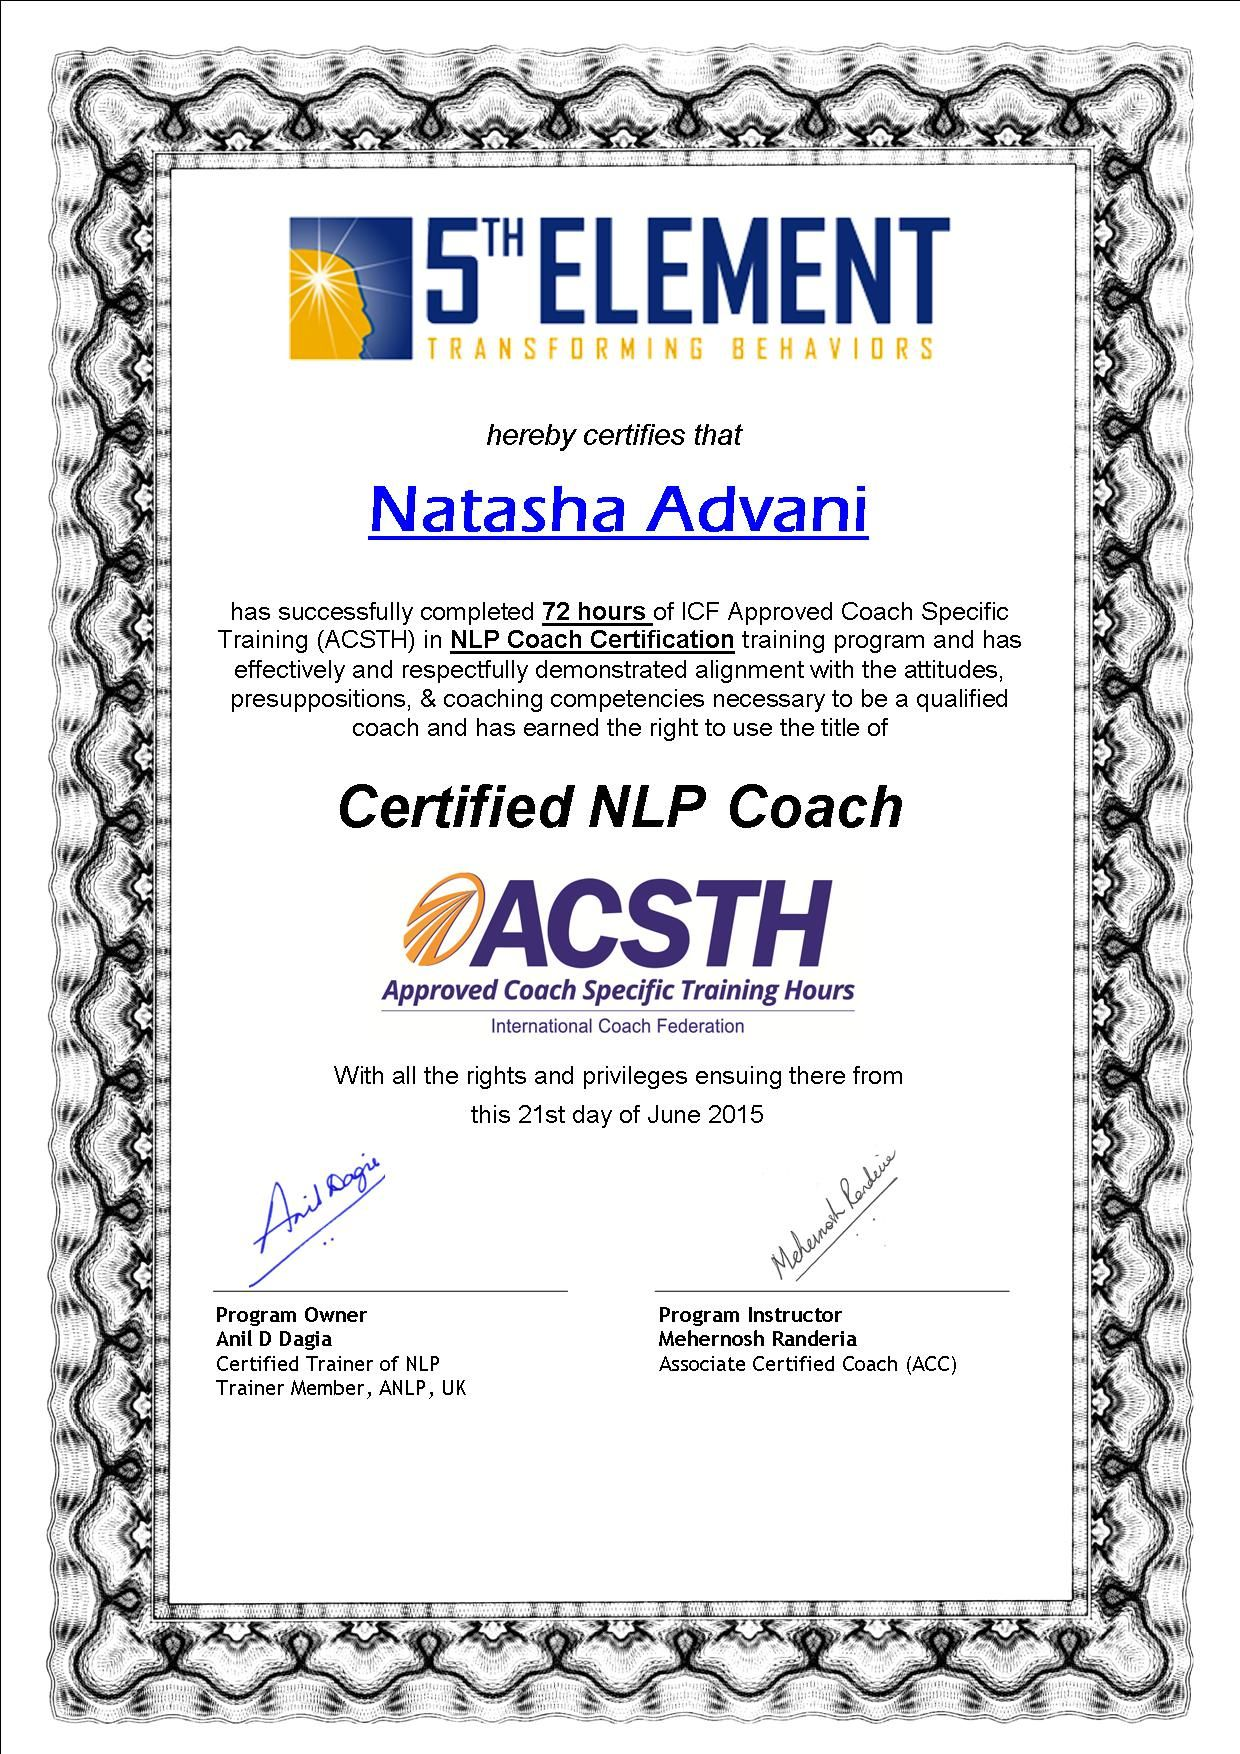 Congratulations natash advani trainer life coach in mumbai at congratulations natash advani trainer life coach in mumbai at being awarded the prestigious highly coveted icf coach certificate xflitez Images